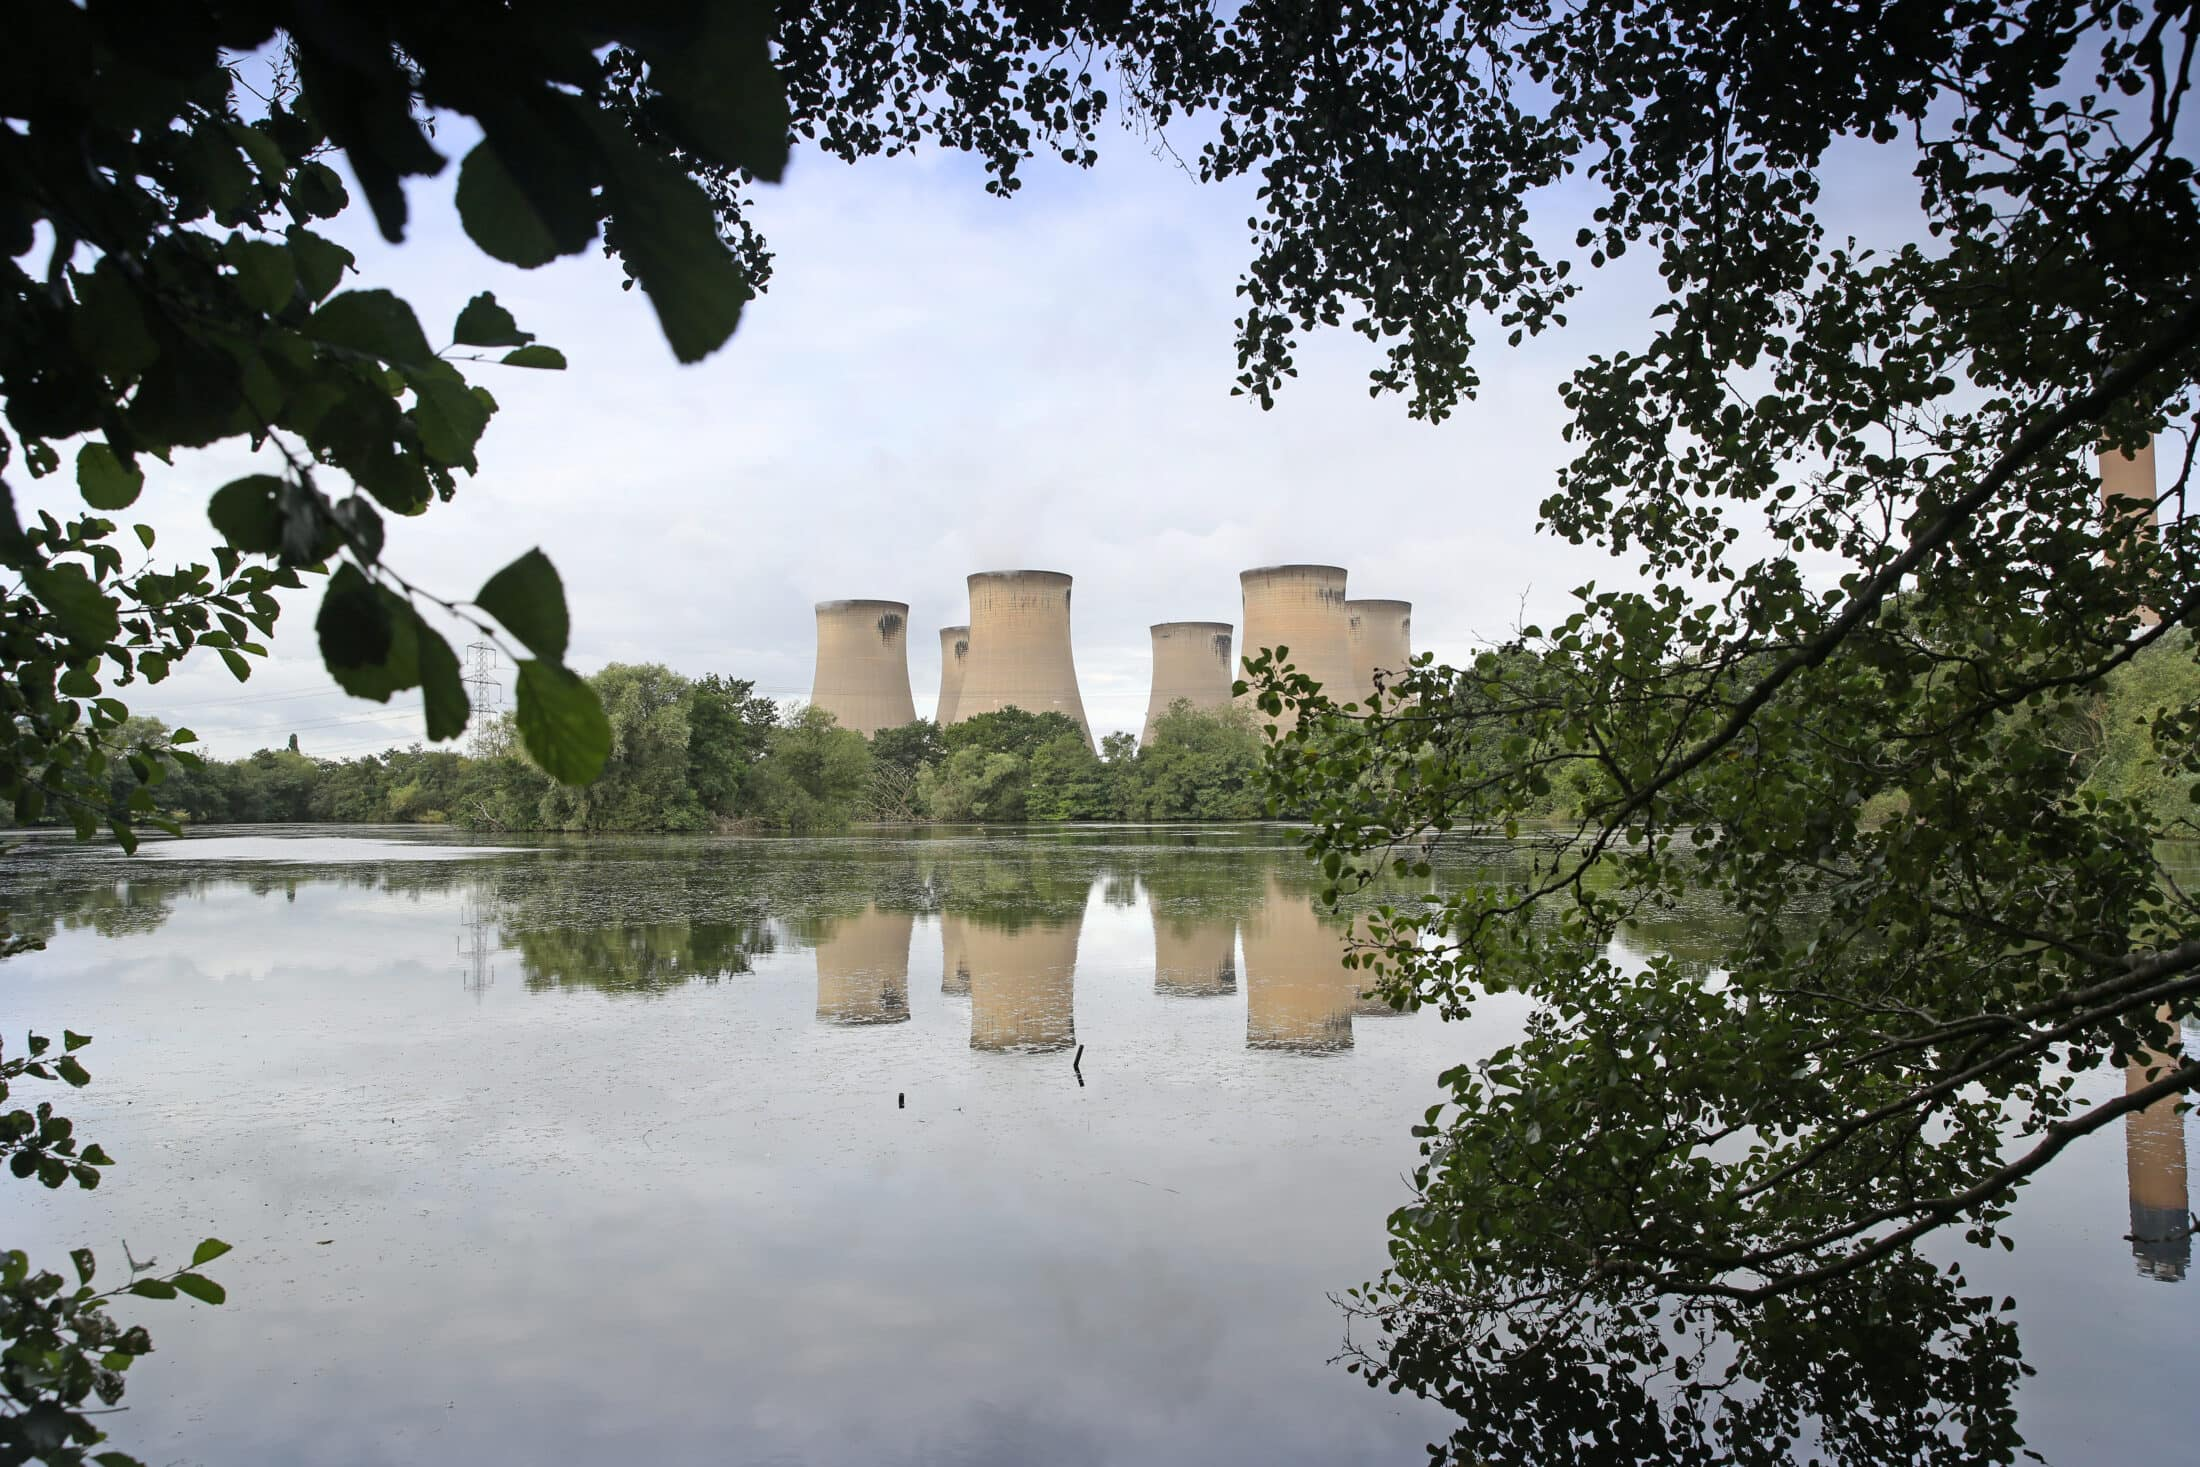 A view of the Drax power-plant in Yorkshire